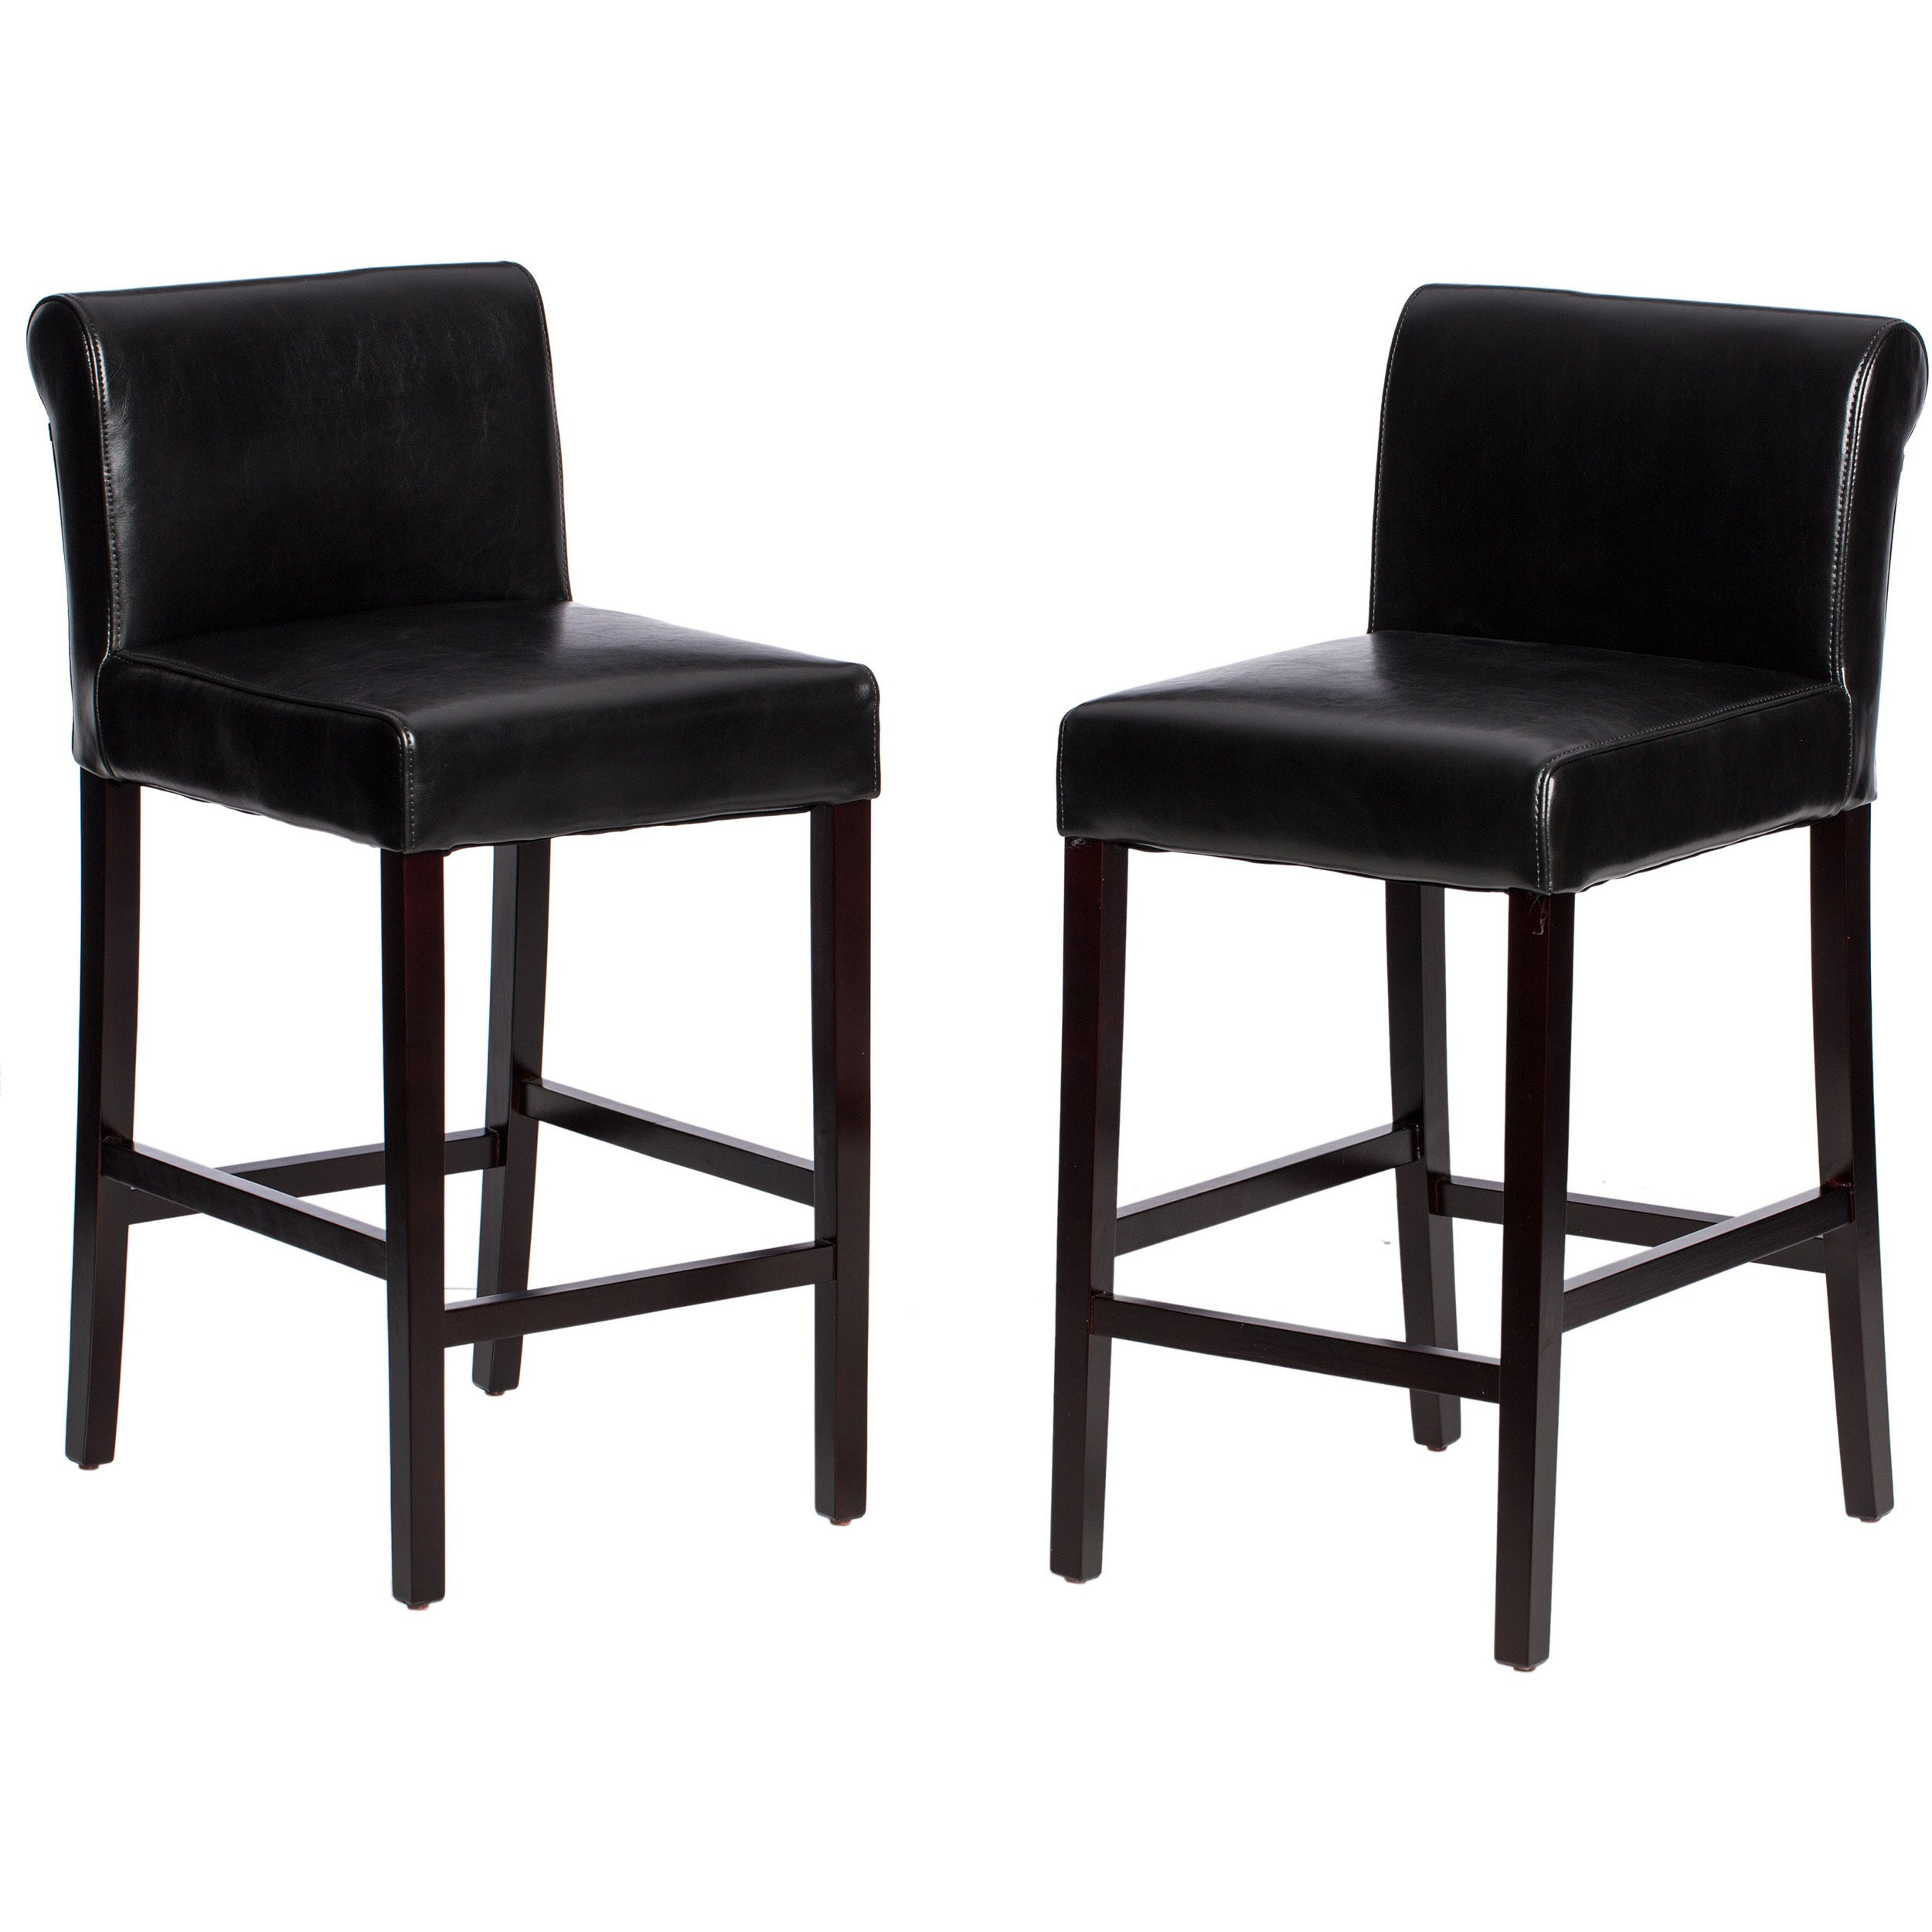 Shop jasper laine cosmopolitan black leather counter stools set of 2 free shipping today overstock com 2502522